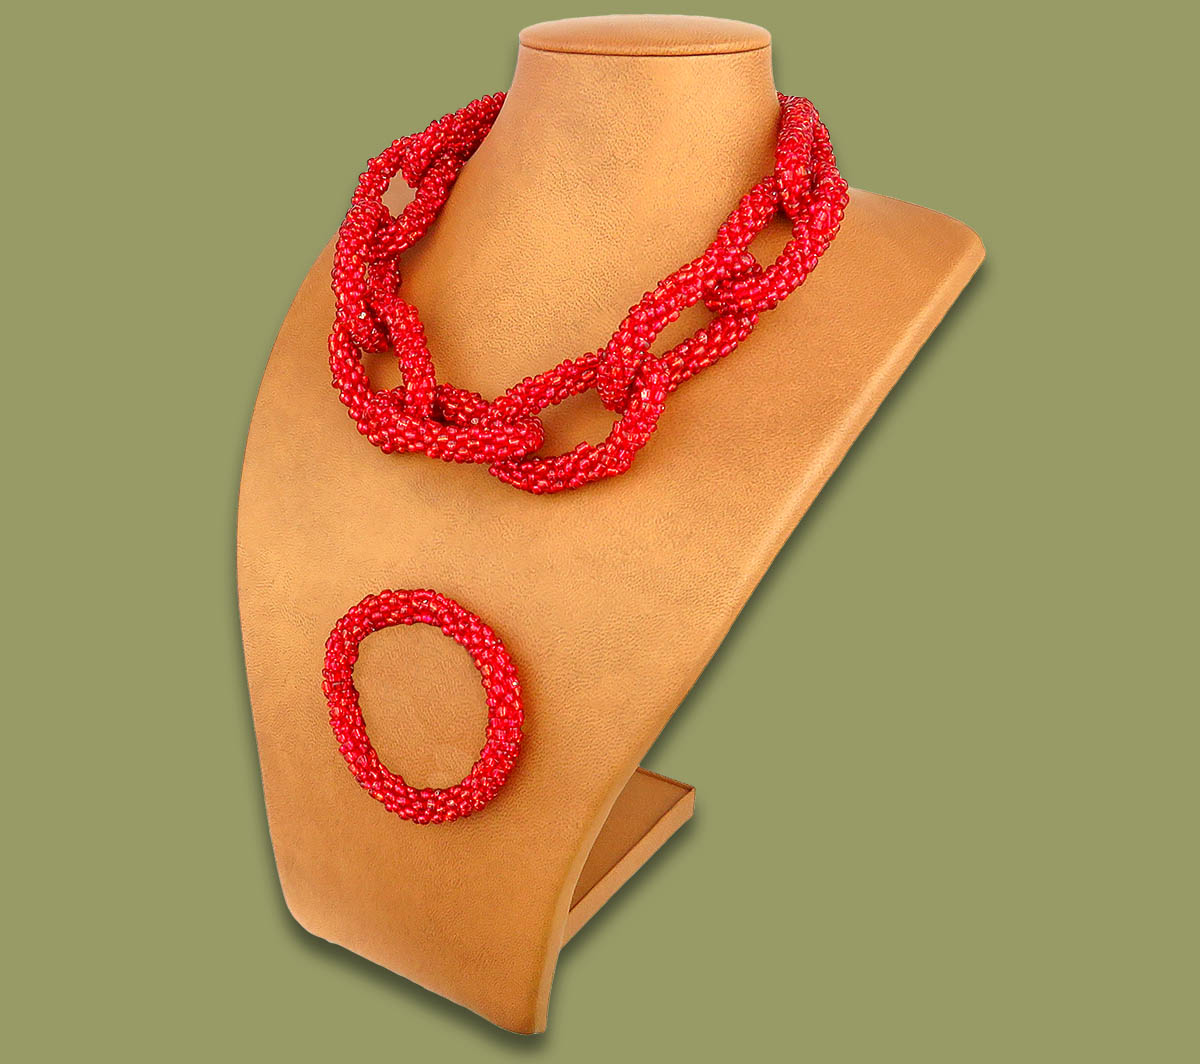 Beaded Necklace & Bangle Set Chain Red